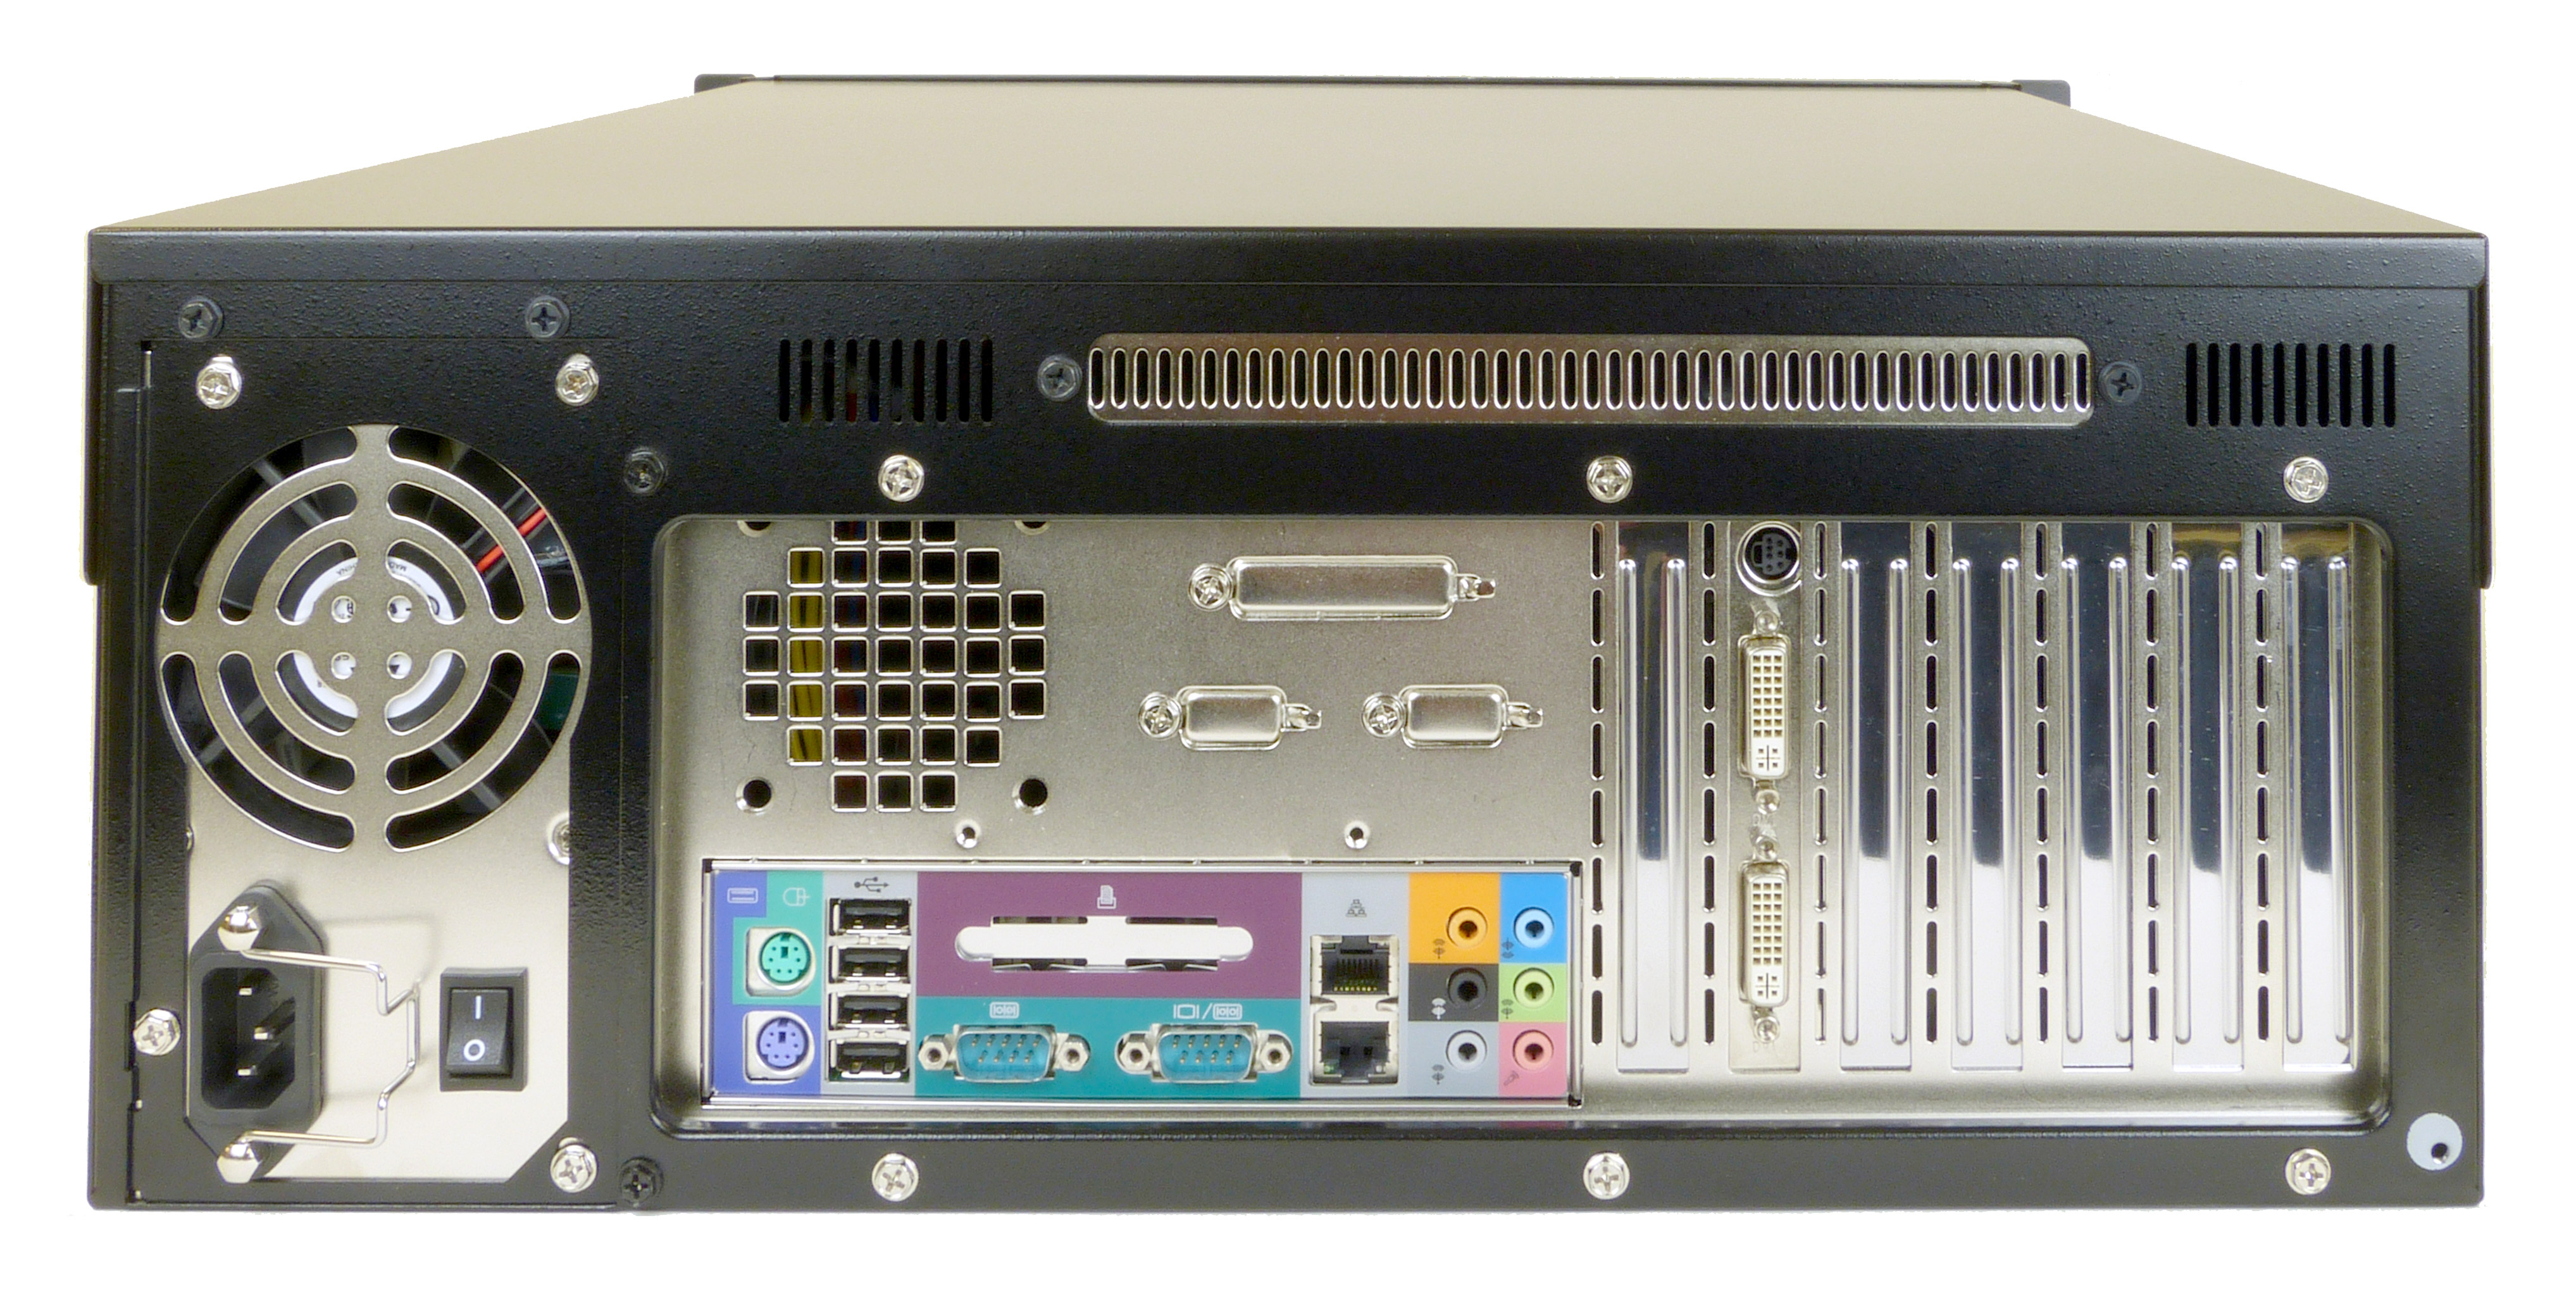 AD-586E 4U Rack Mount Server Rear